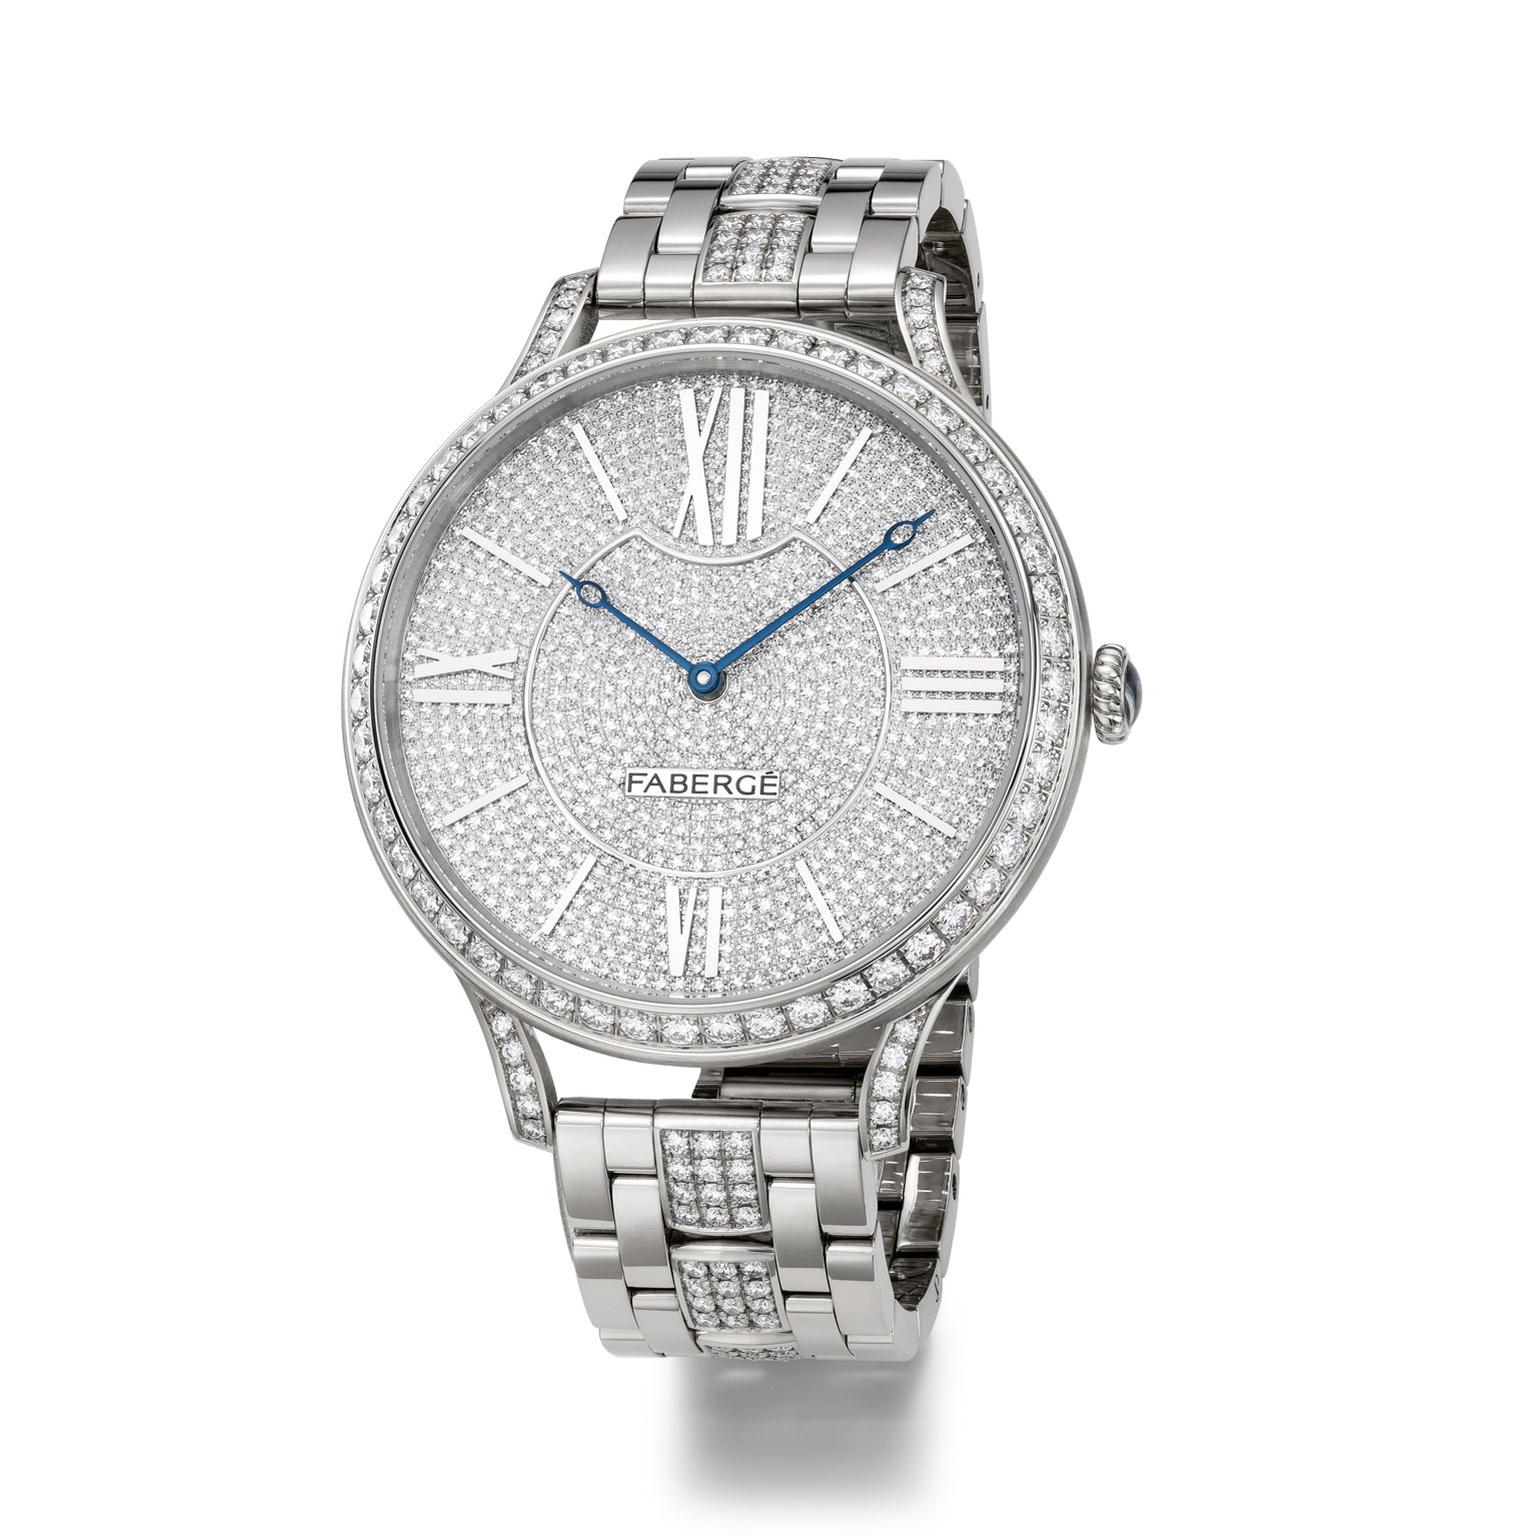 Faberge Lady Faberge 39mm white gold diamond watch